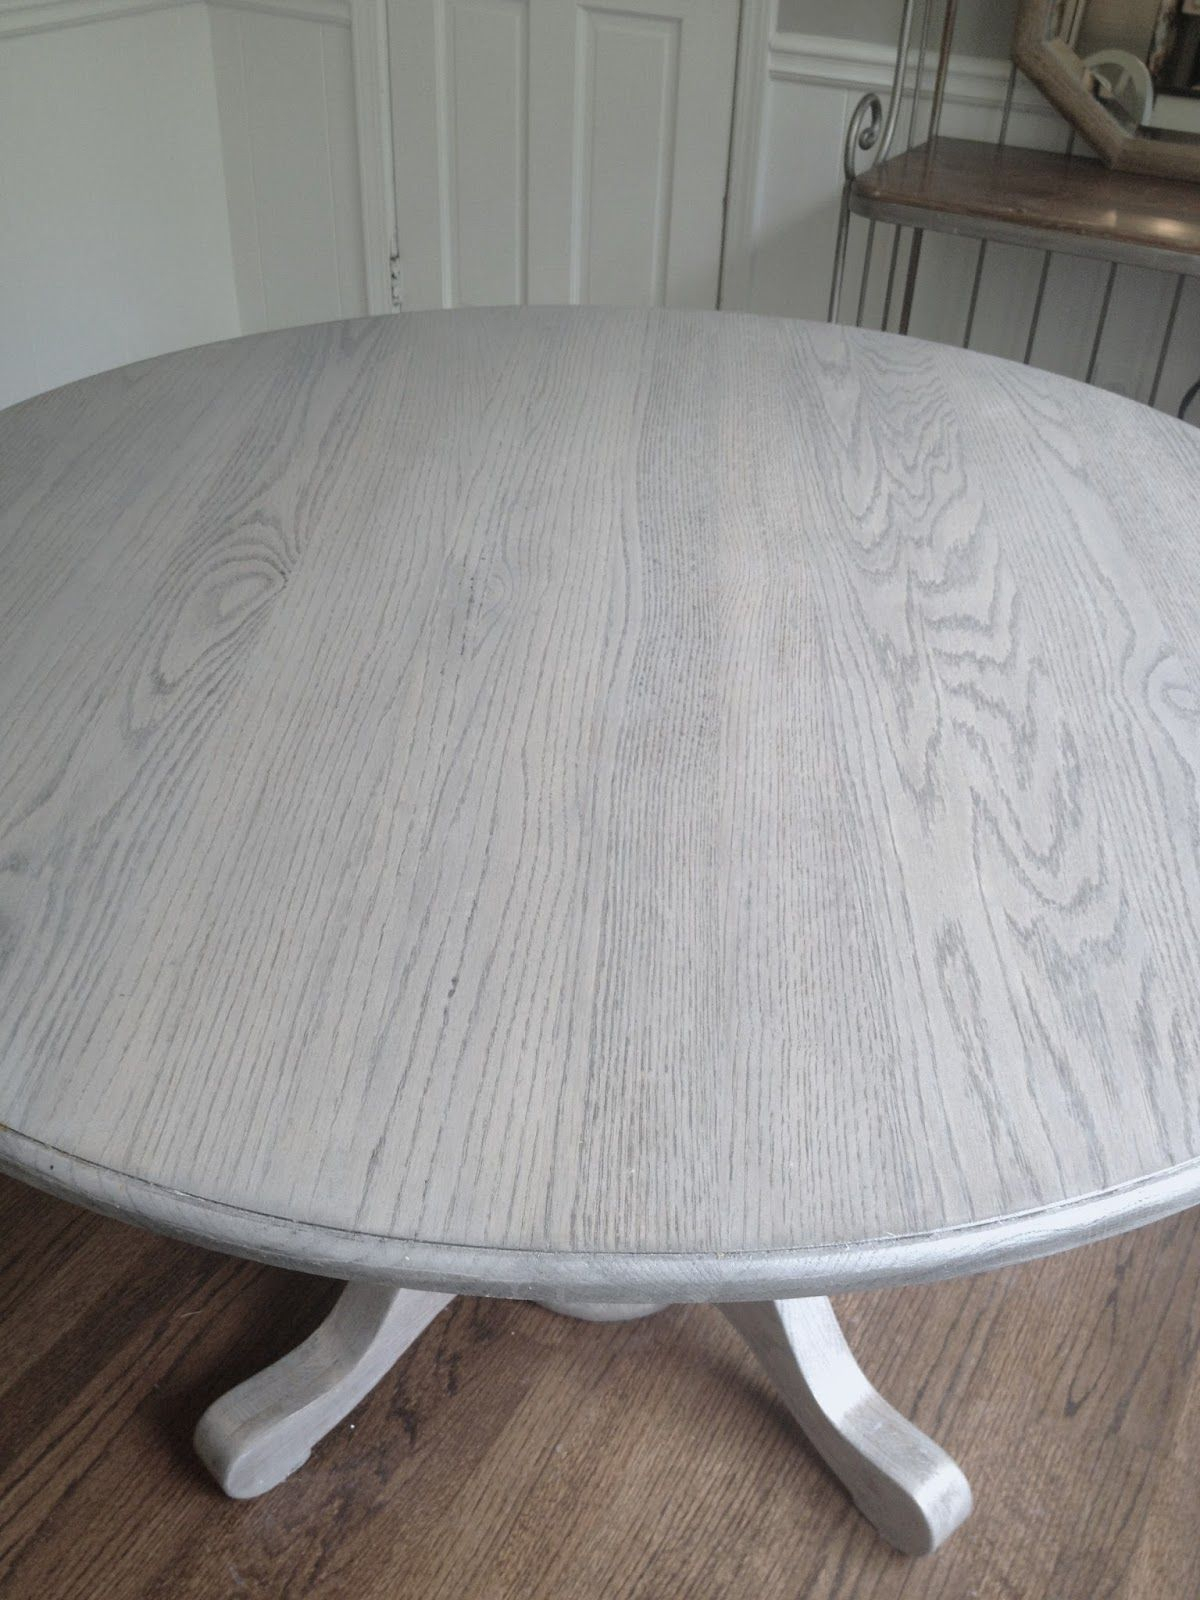 Refinishing Dining Table Gray!!long And Found: Diy Kitchen Table In Recent Falmer 3 Piece Solid Wood Dining Sets (Image 19 of 20)